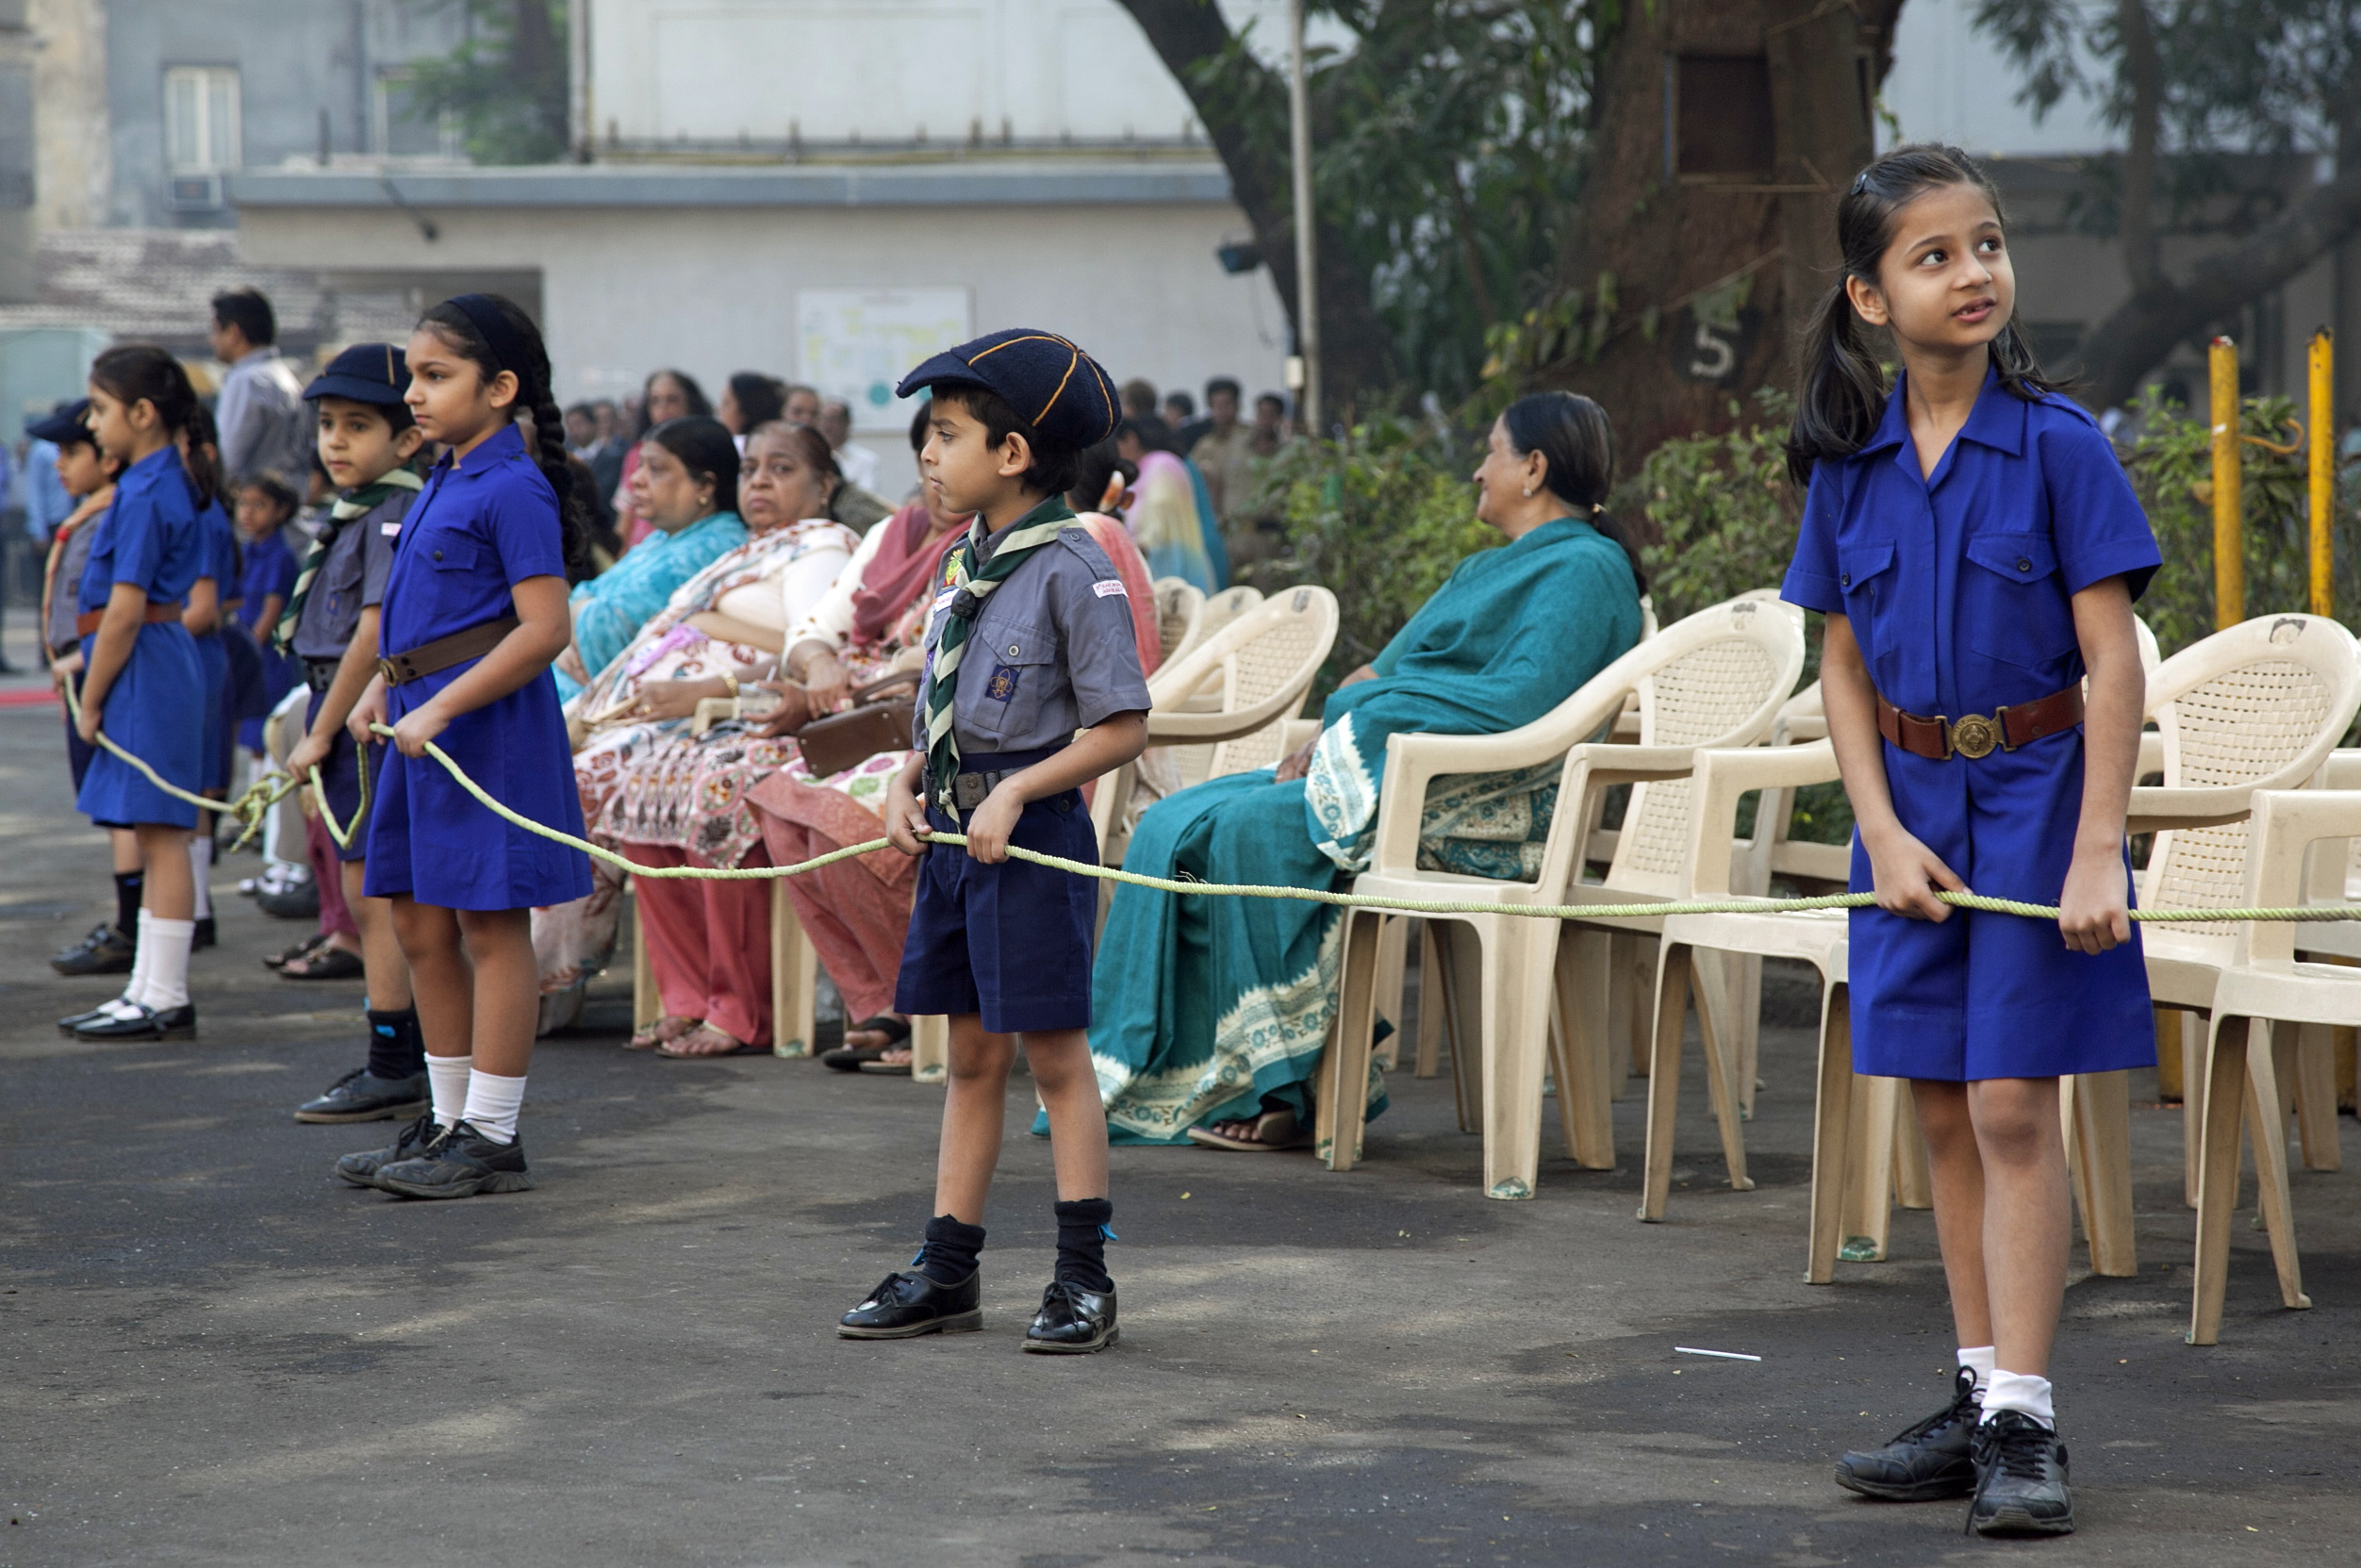 Cubs (Boy Scouts) and Bulbuls (Girl Guides) line up in preparation for Princess Zahra's visit to Prince Aly Khan Hospital in Mumbai. Photo: Courtesy of the Ismaili Council for India